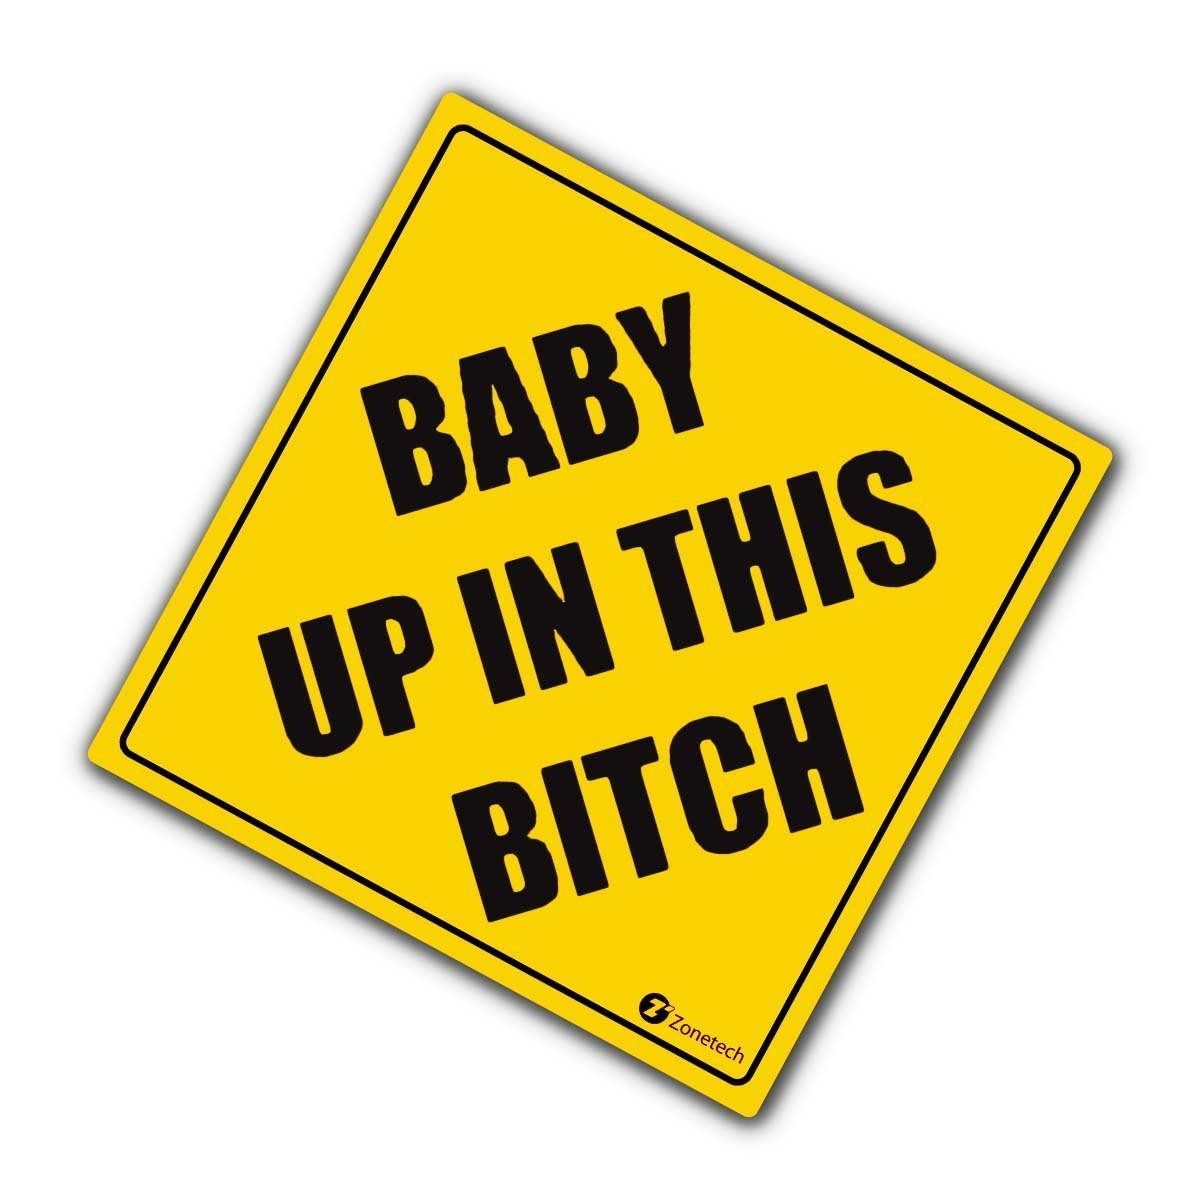 "Zone Tech ""Baby Up On This Bitch"" Vehicle Safety Sticker - Premium Quality Convenient Reflective ""Baby Up On This Bitch"" Vehicle Safety Funny Sign Sticker"